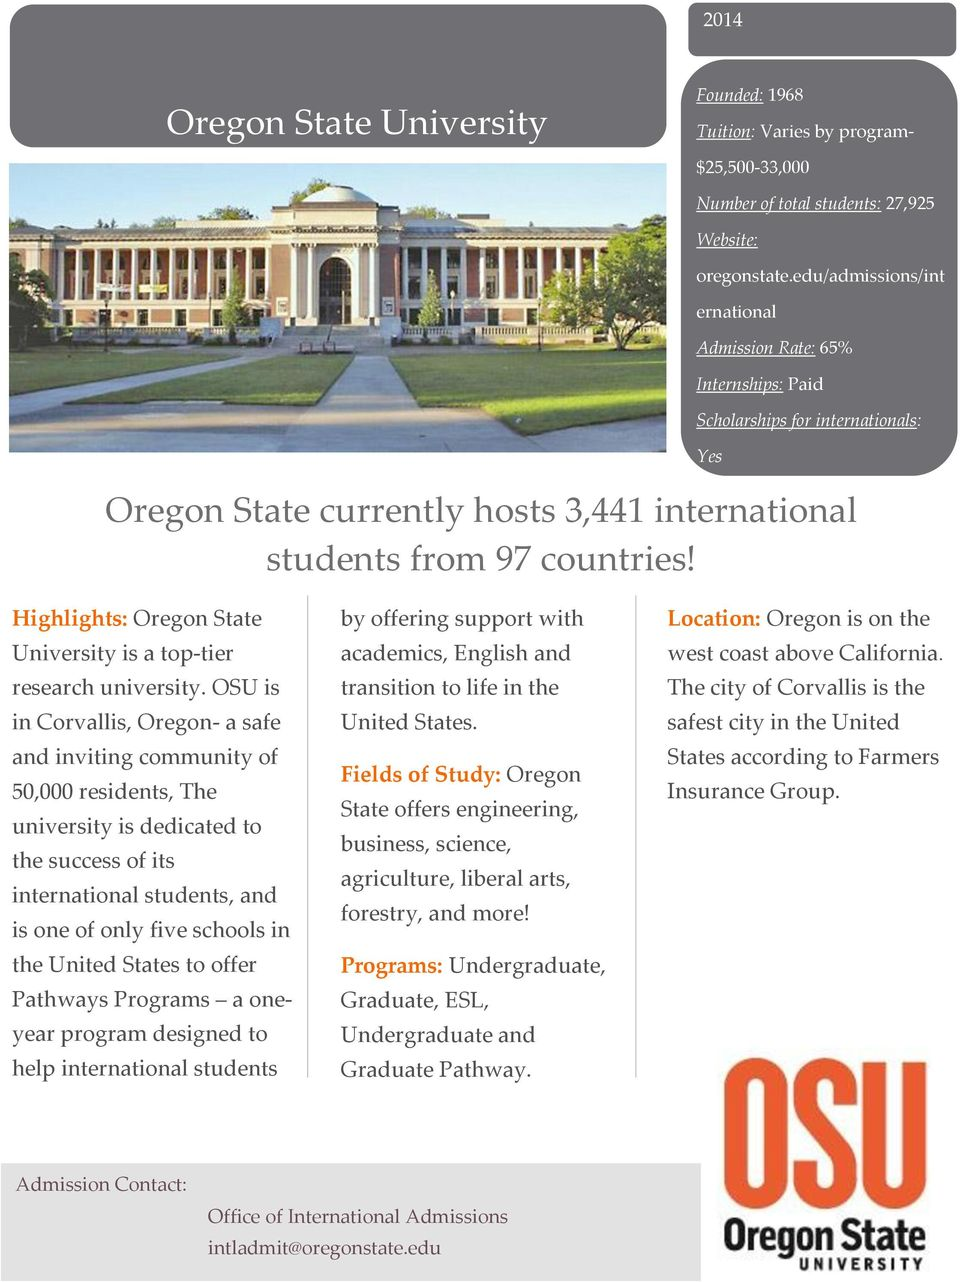 Highlights: Oregon State University is a top-tier research university.